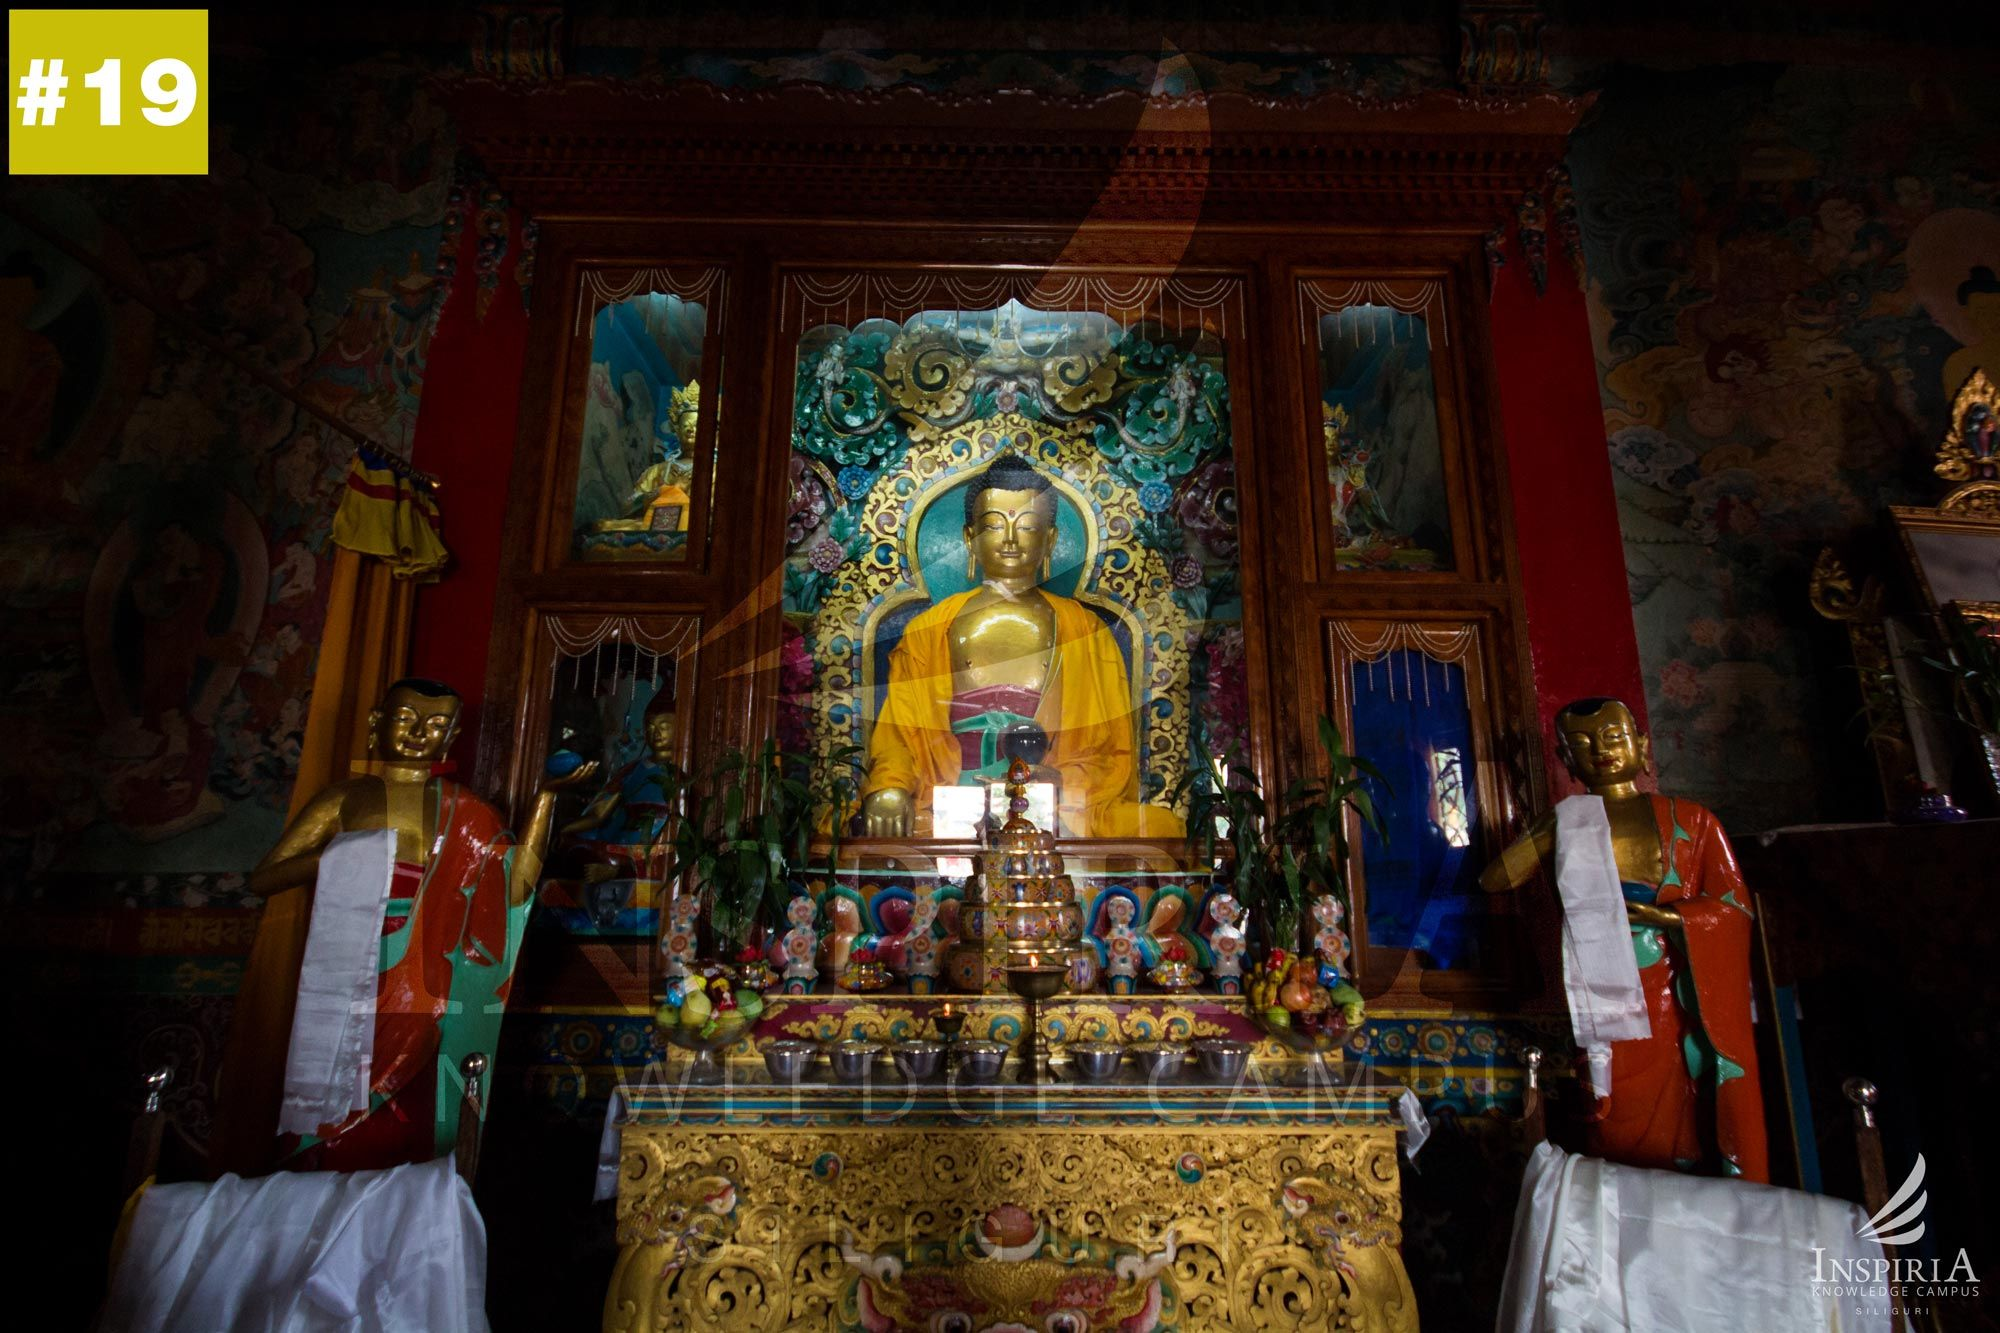 salugara-monastery-siliguri-inspiria-knowledge-campus-1001-things-to-do-buddha-inside-wb